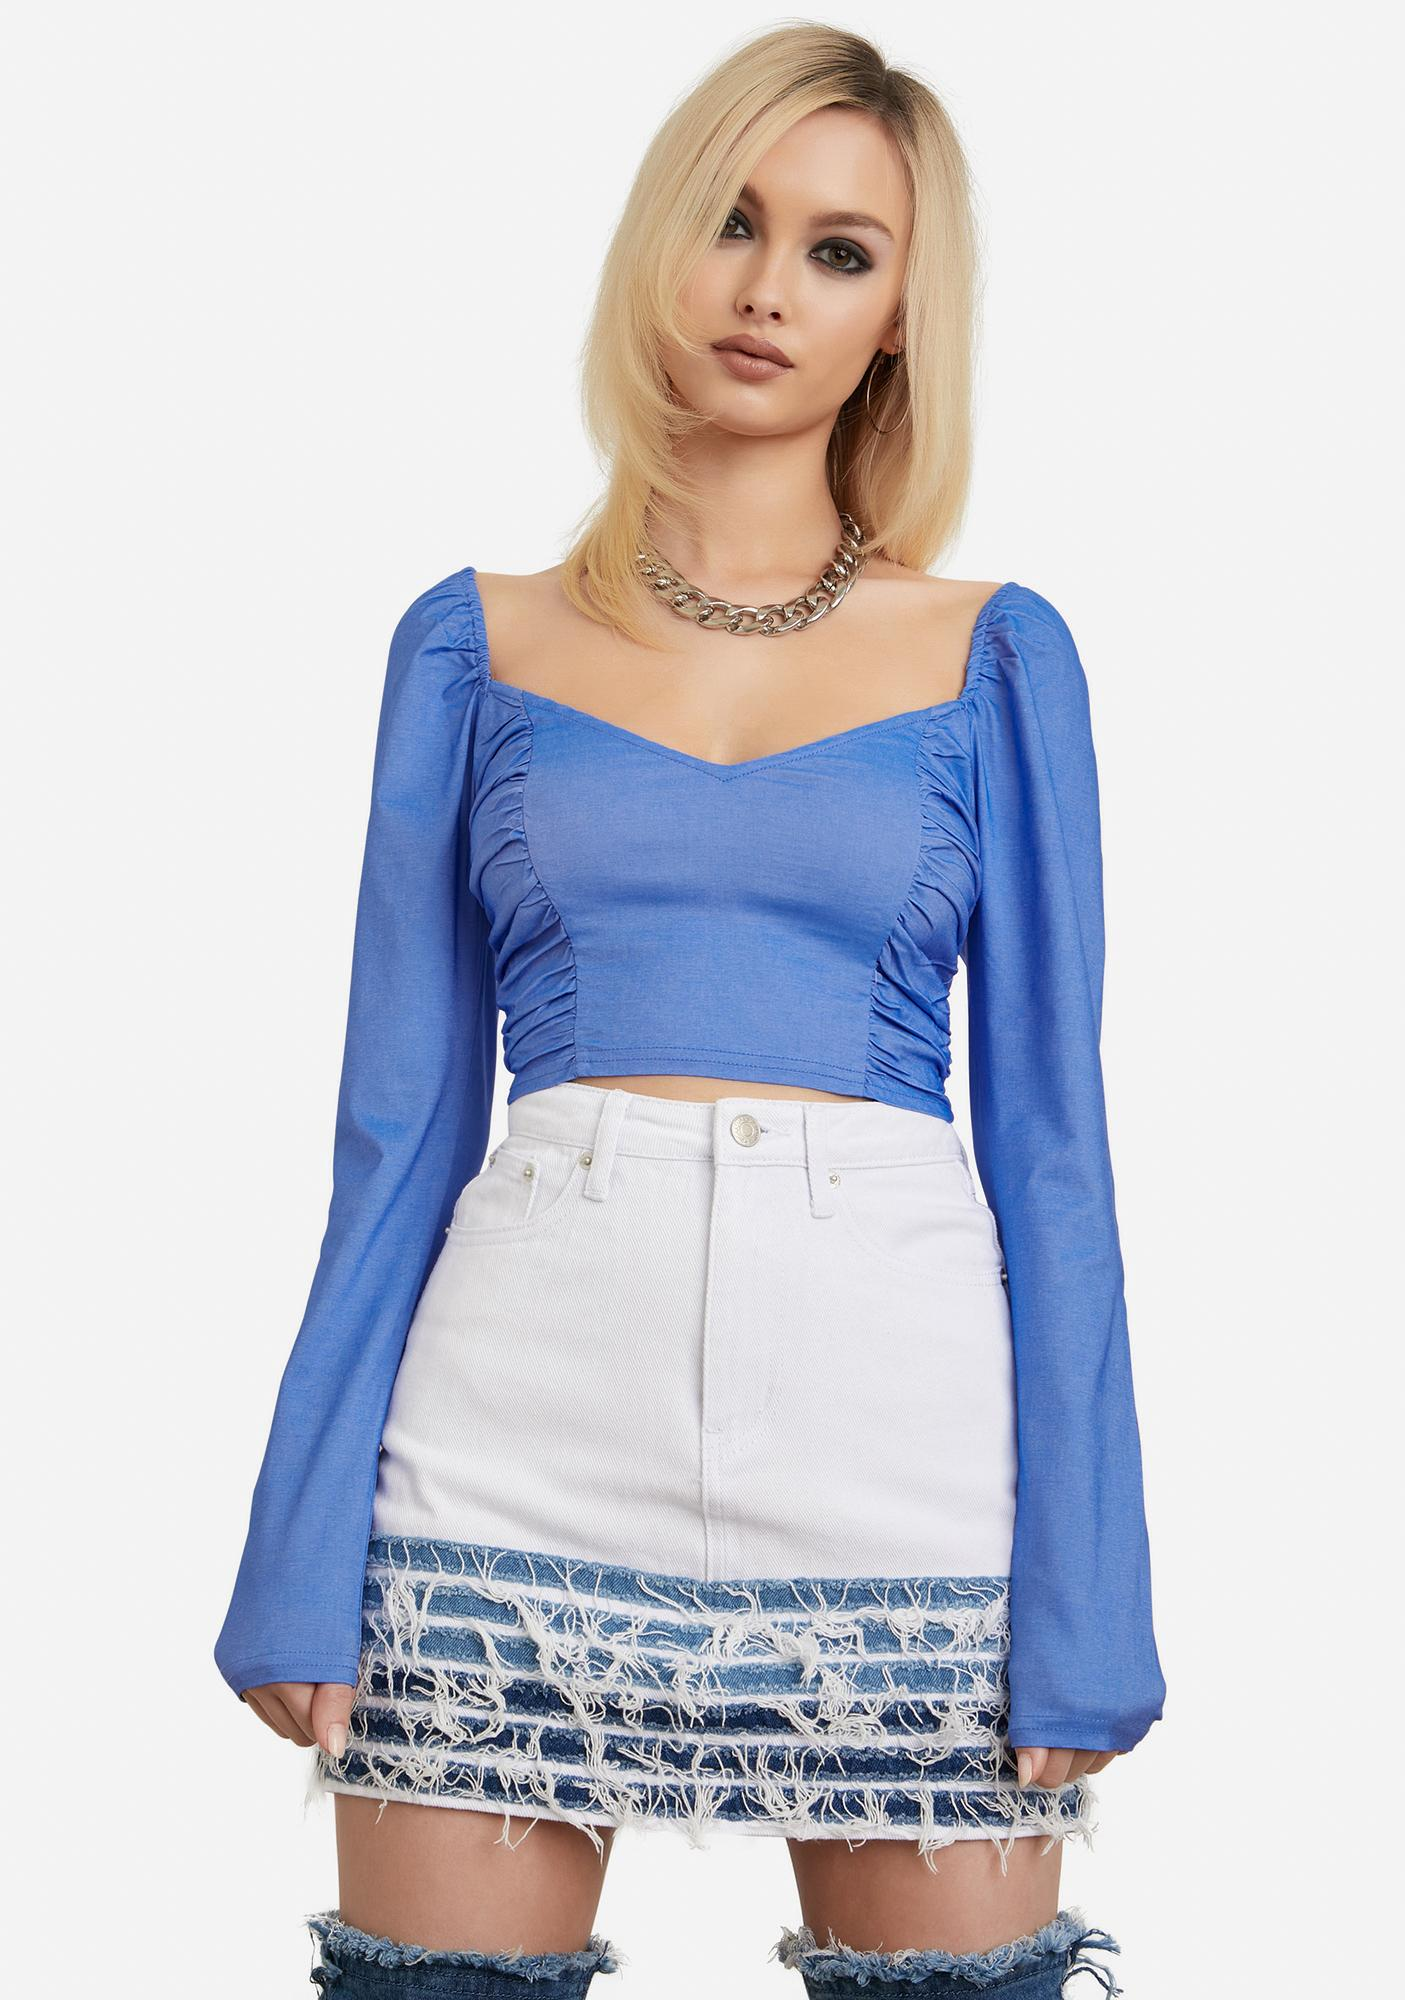 I'll Be Your Girl Ruched Crop Top